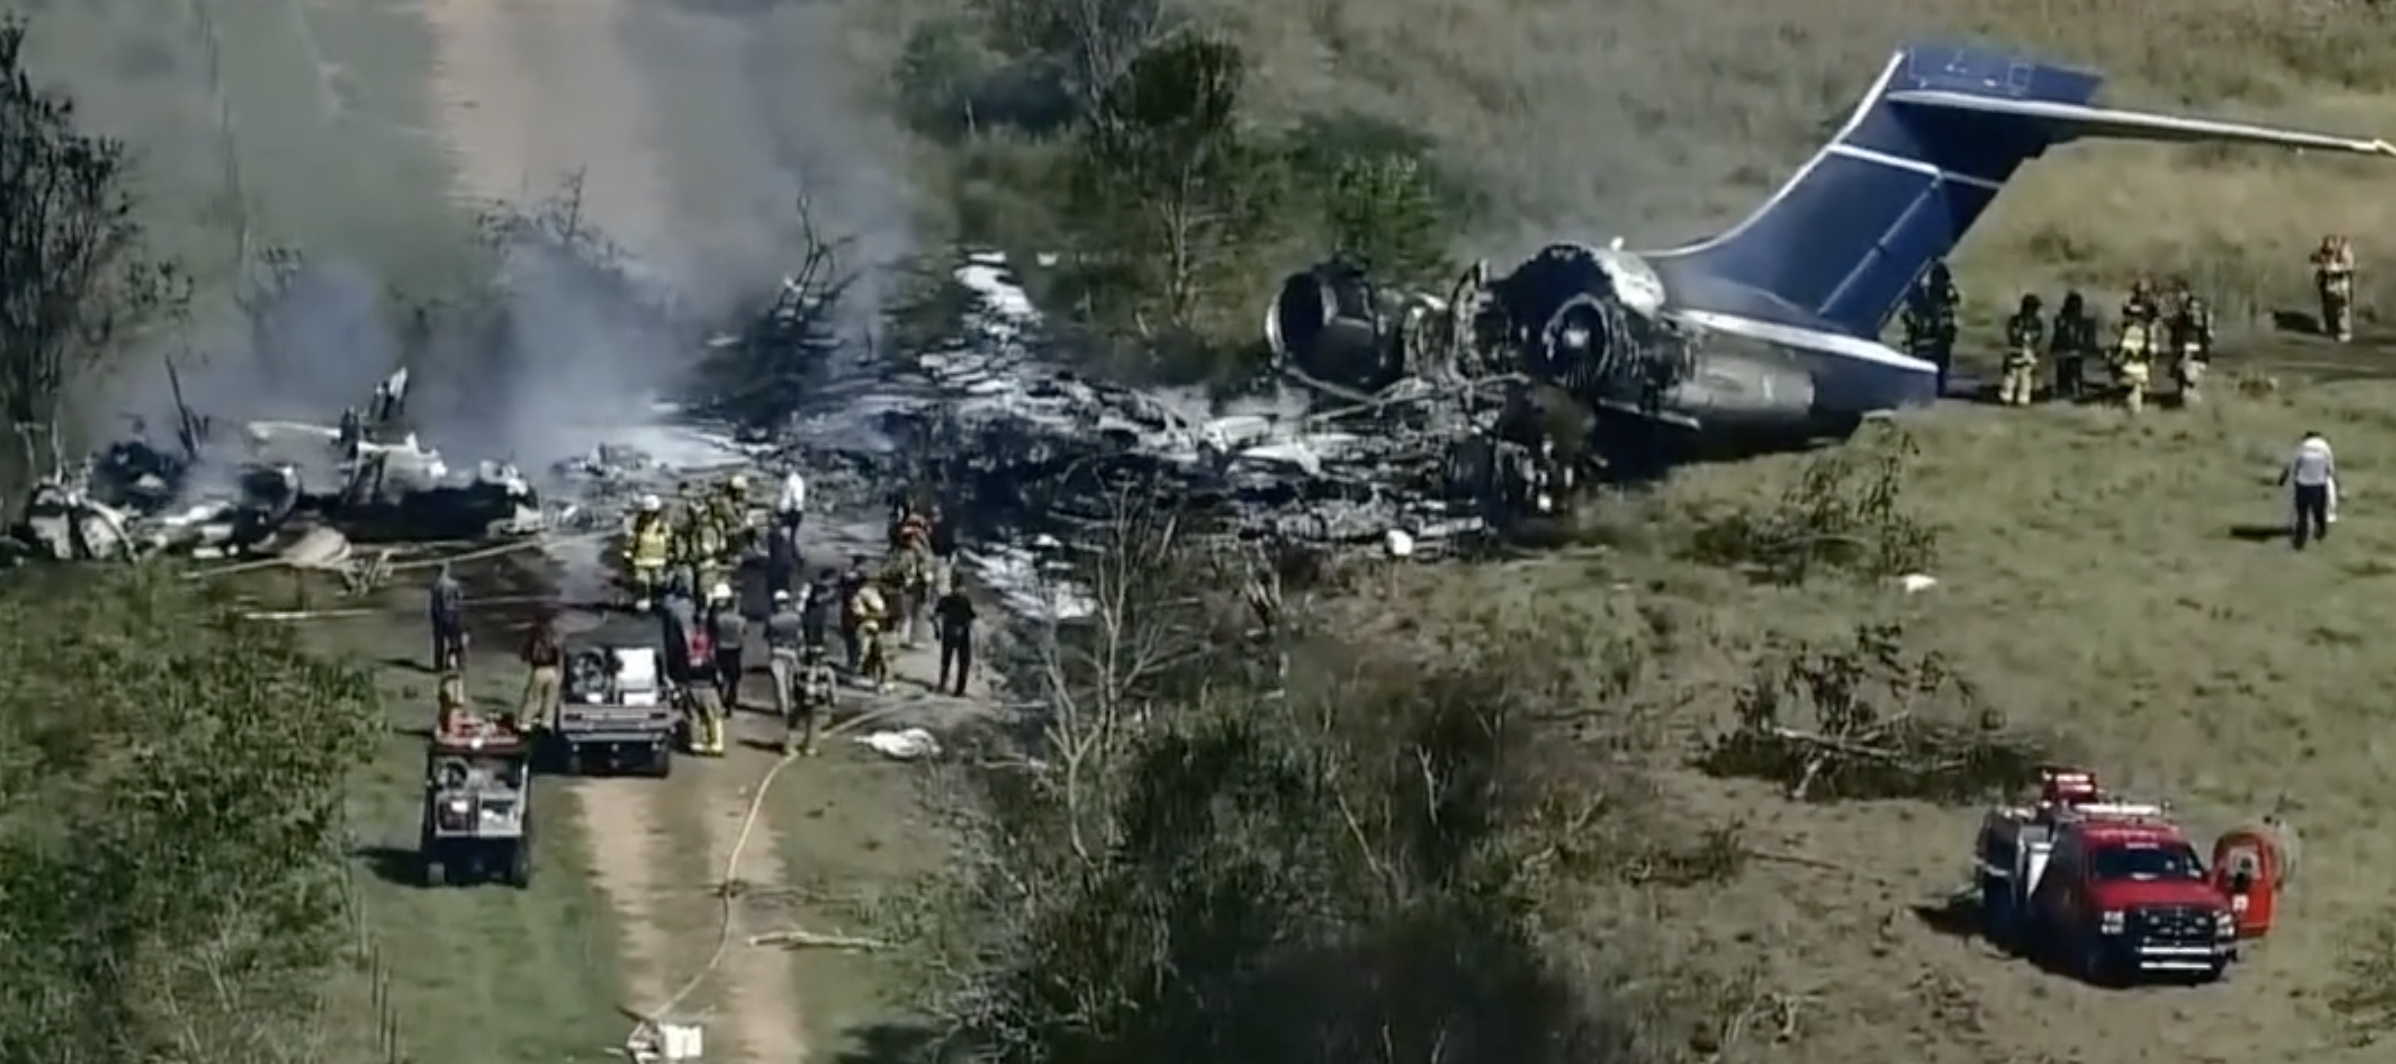 ACCIDENT: A plane has crashed and burst into flames near Houston Executive Airport